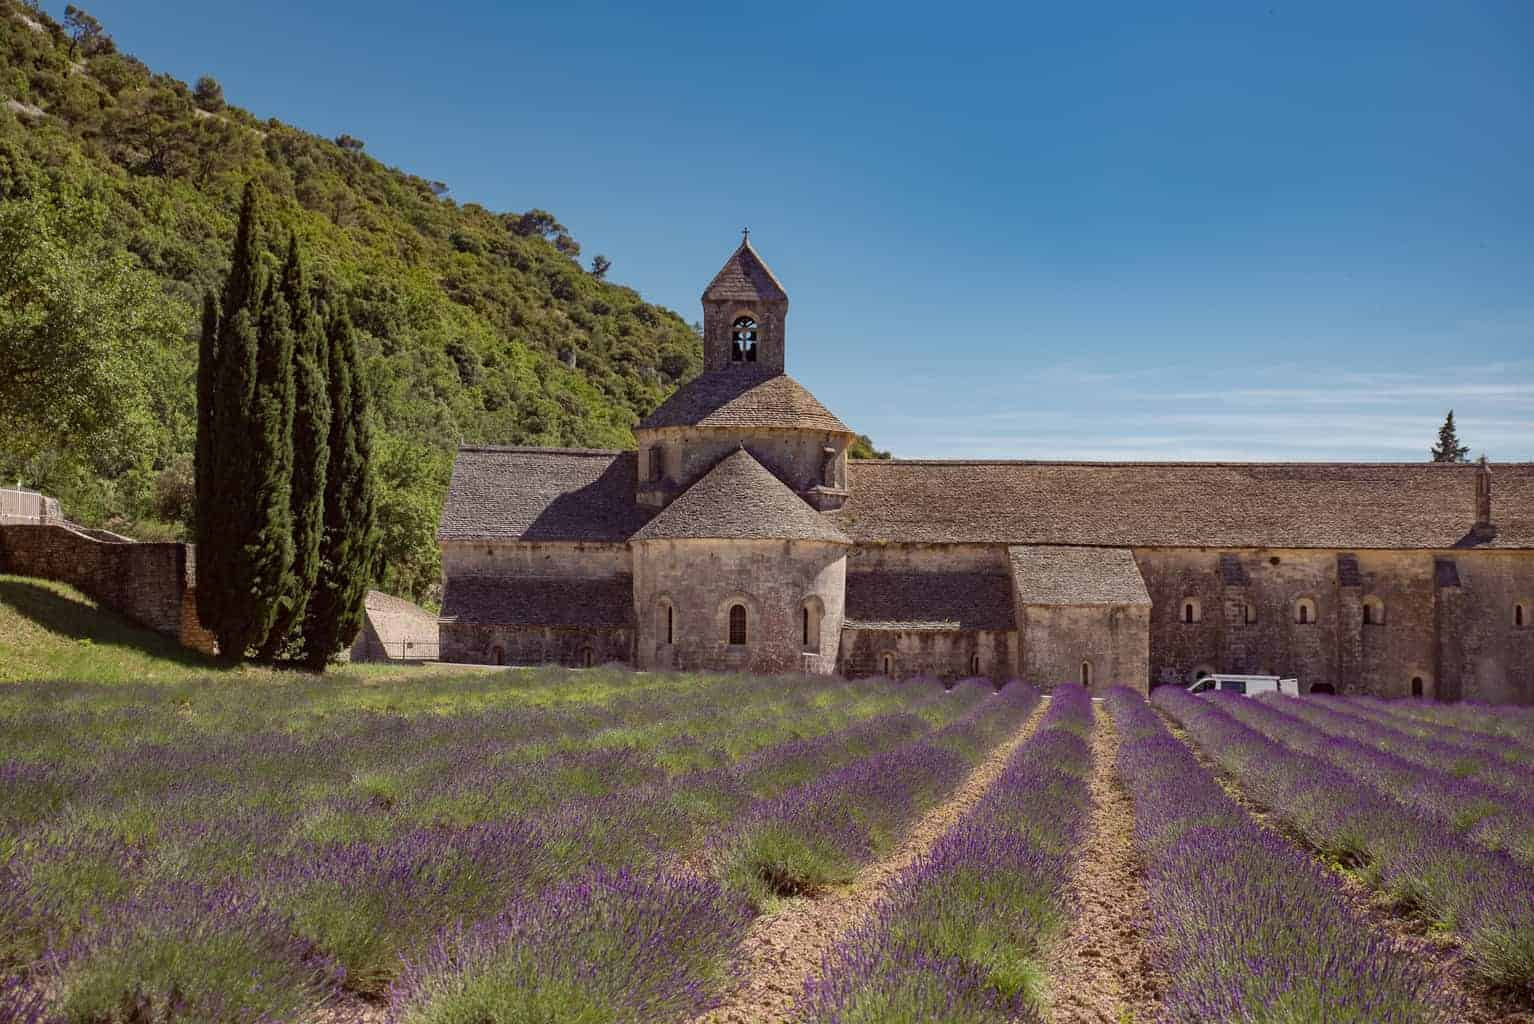 Visiting the Abbaye de Sénanque on a luxury lavender tour in Provence.